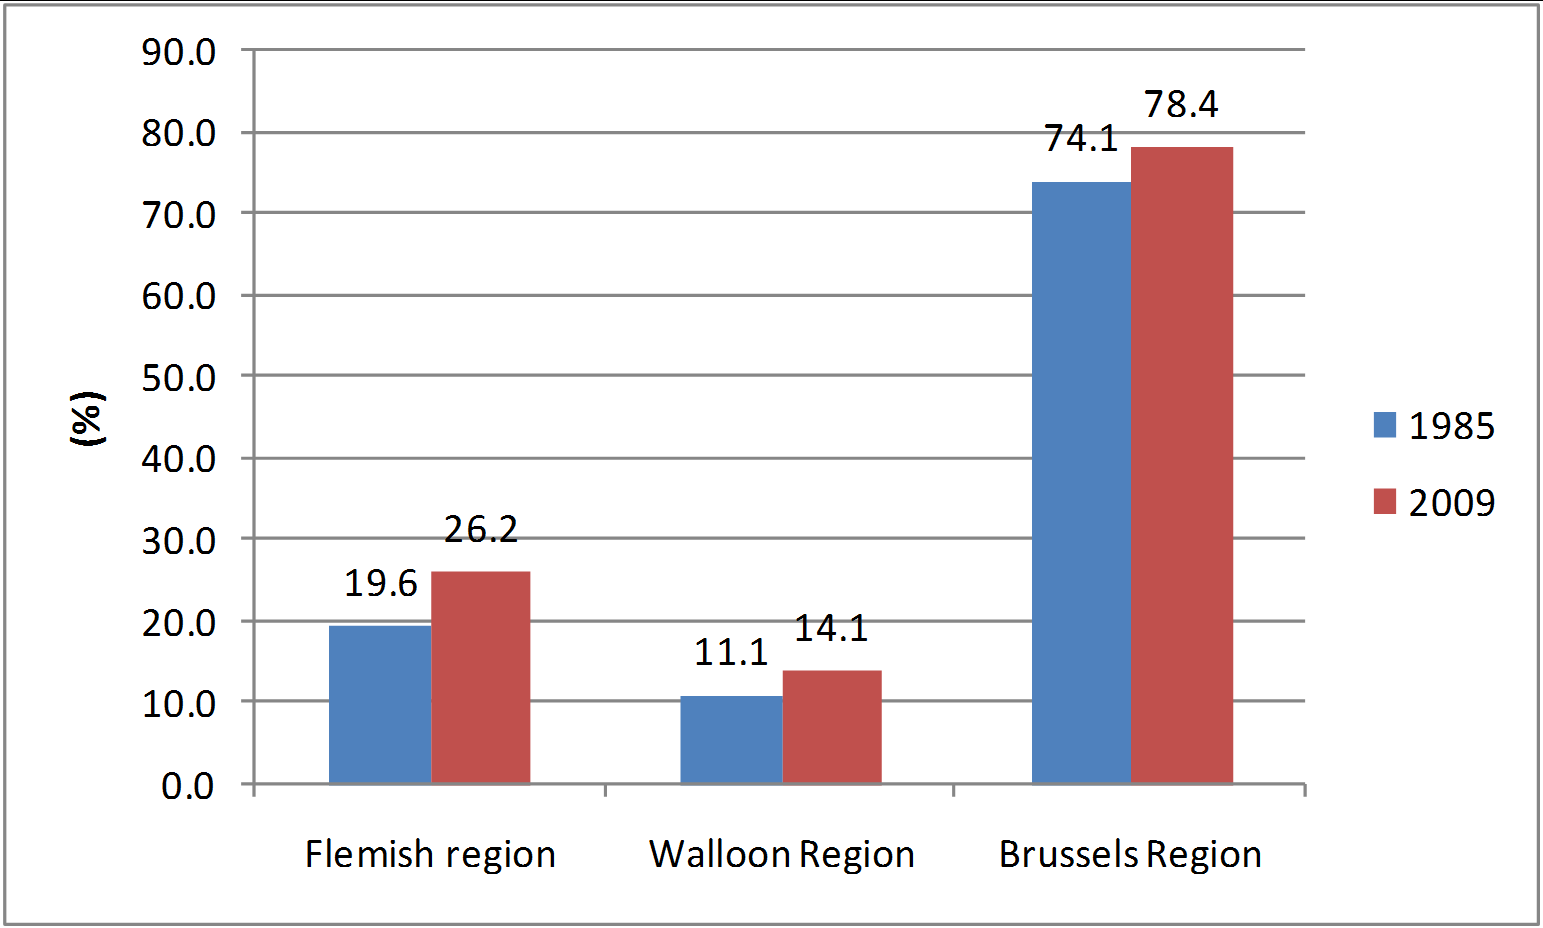 Figure 2: Share of built-up area in each Region of Belgium, 1985 and 2009